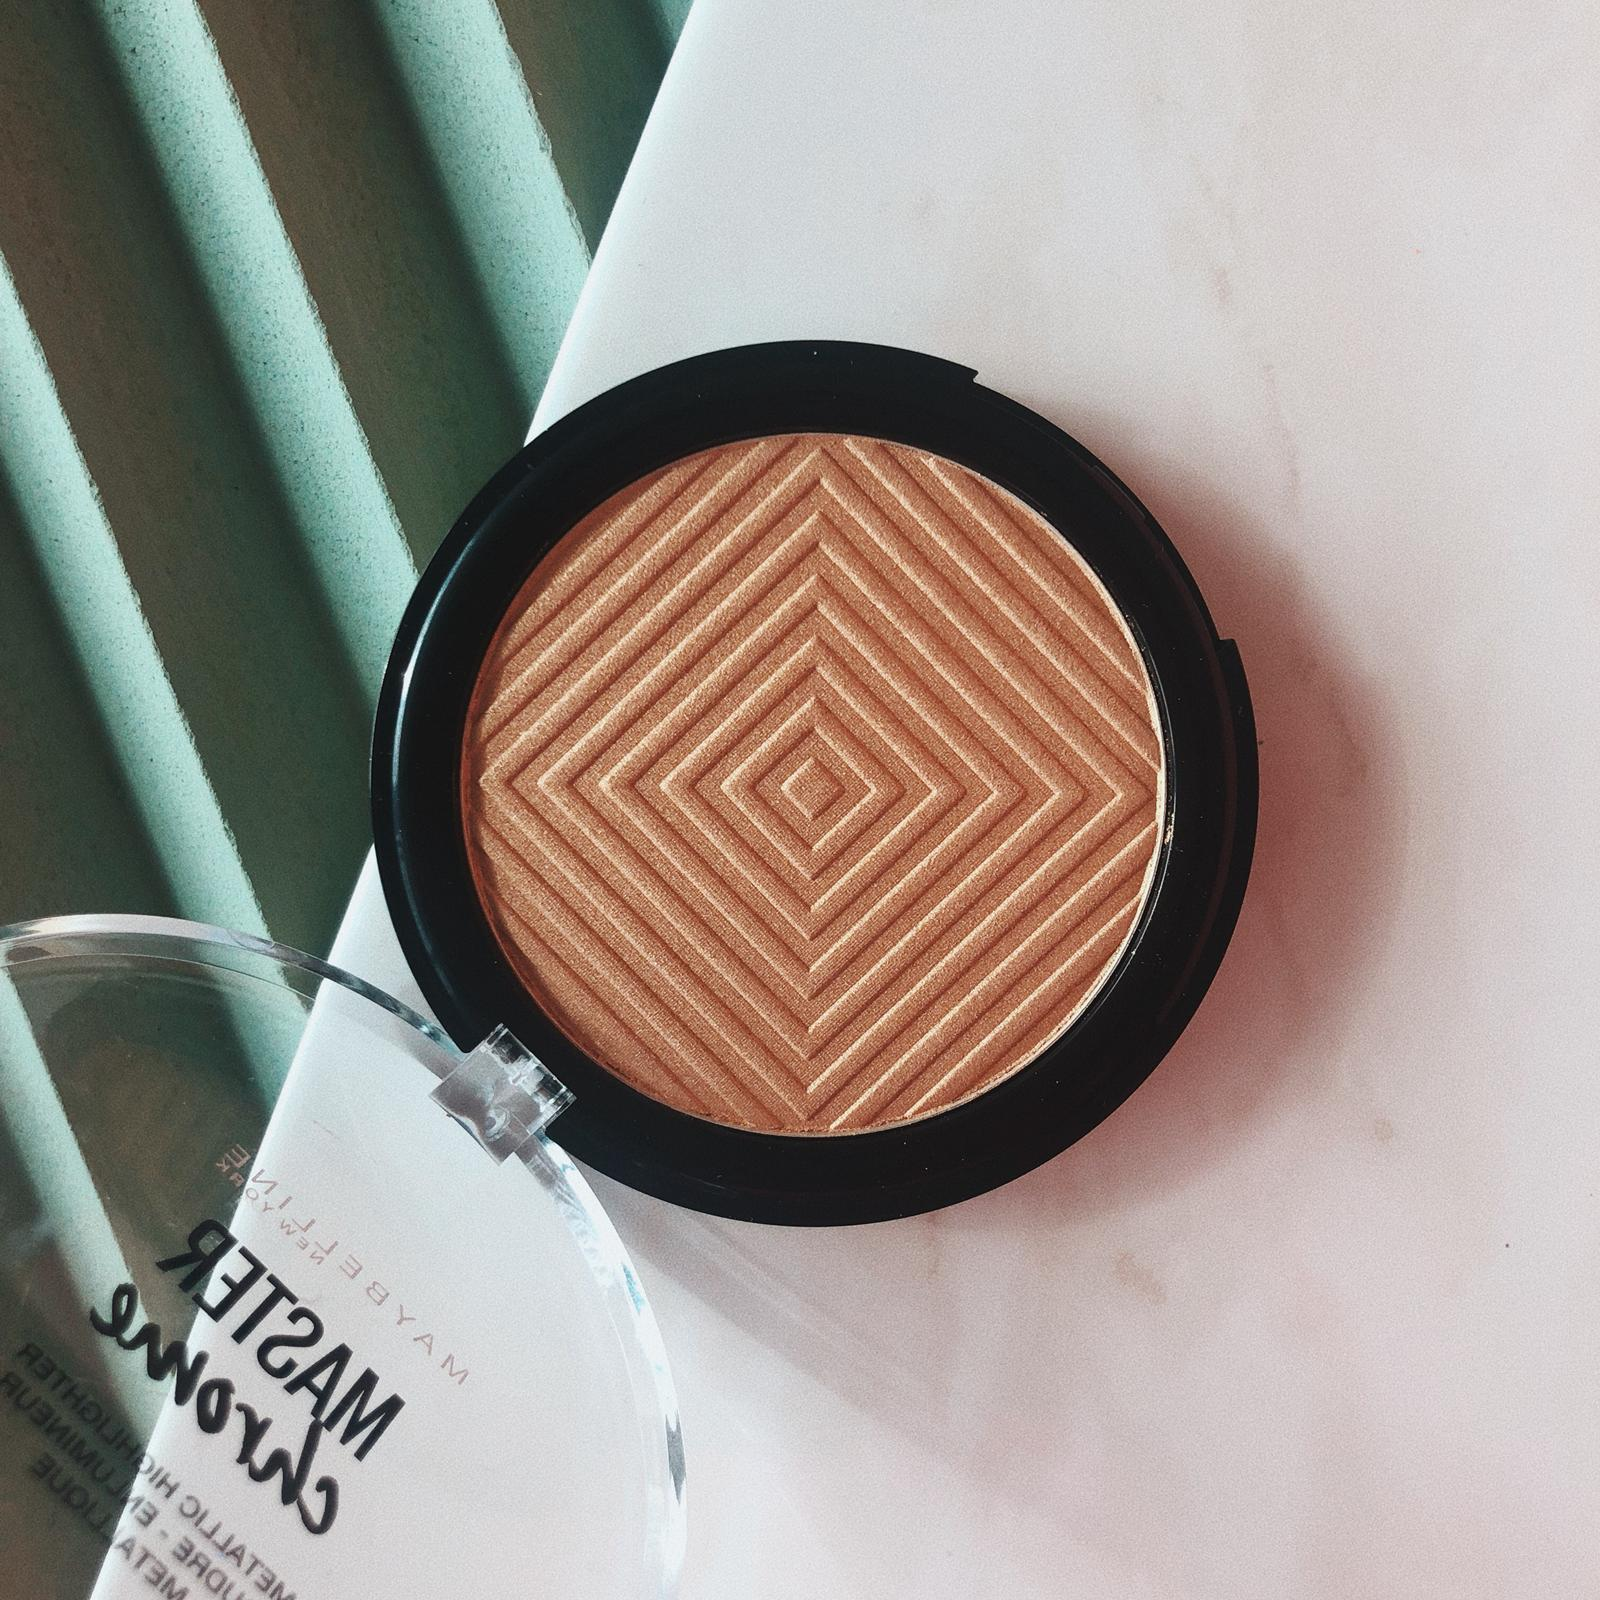 THE   MAYBELLINE MASTER CHROME   IN MOLTEN GOLD IS HANDS DOWN THE BEST DRUGSTORE HIGHLIGHTER OUT THERE! I PUT IT ON ALL THE HIGHPOINTS OF MY FACE AND WOW, IT'S JUST REFLECTING THE LIGHT IN THE MOST BEAUTIFUL WAY - AND YOU SIMPLY CAN'T BEAT THE PRICE FOR THIS TYPE OF QUALITY. - J